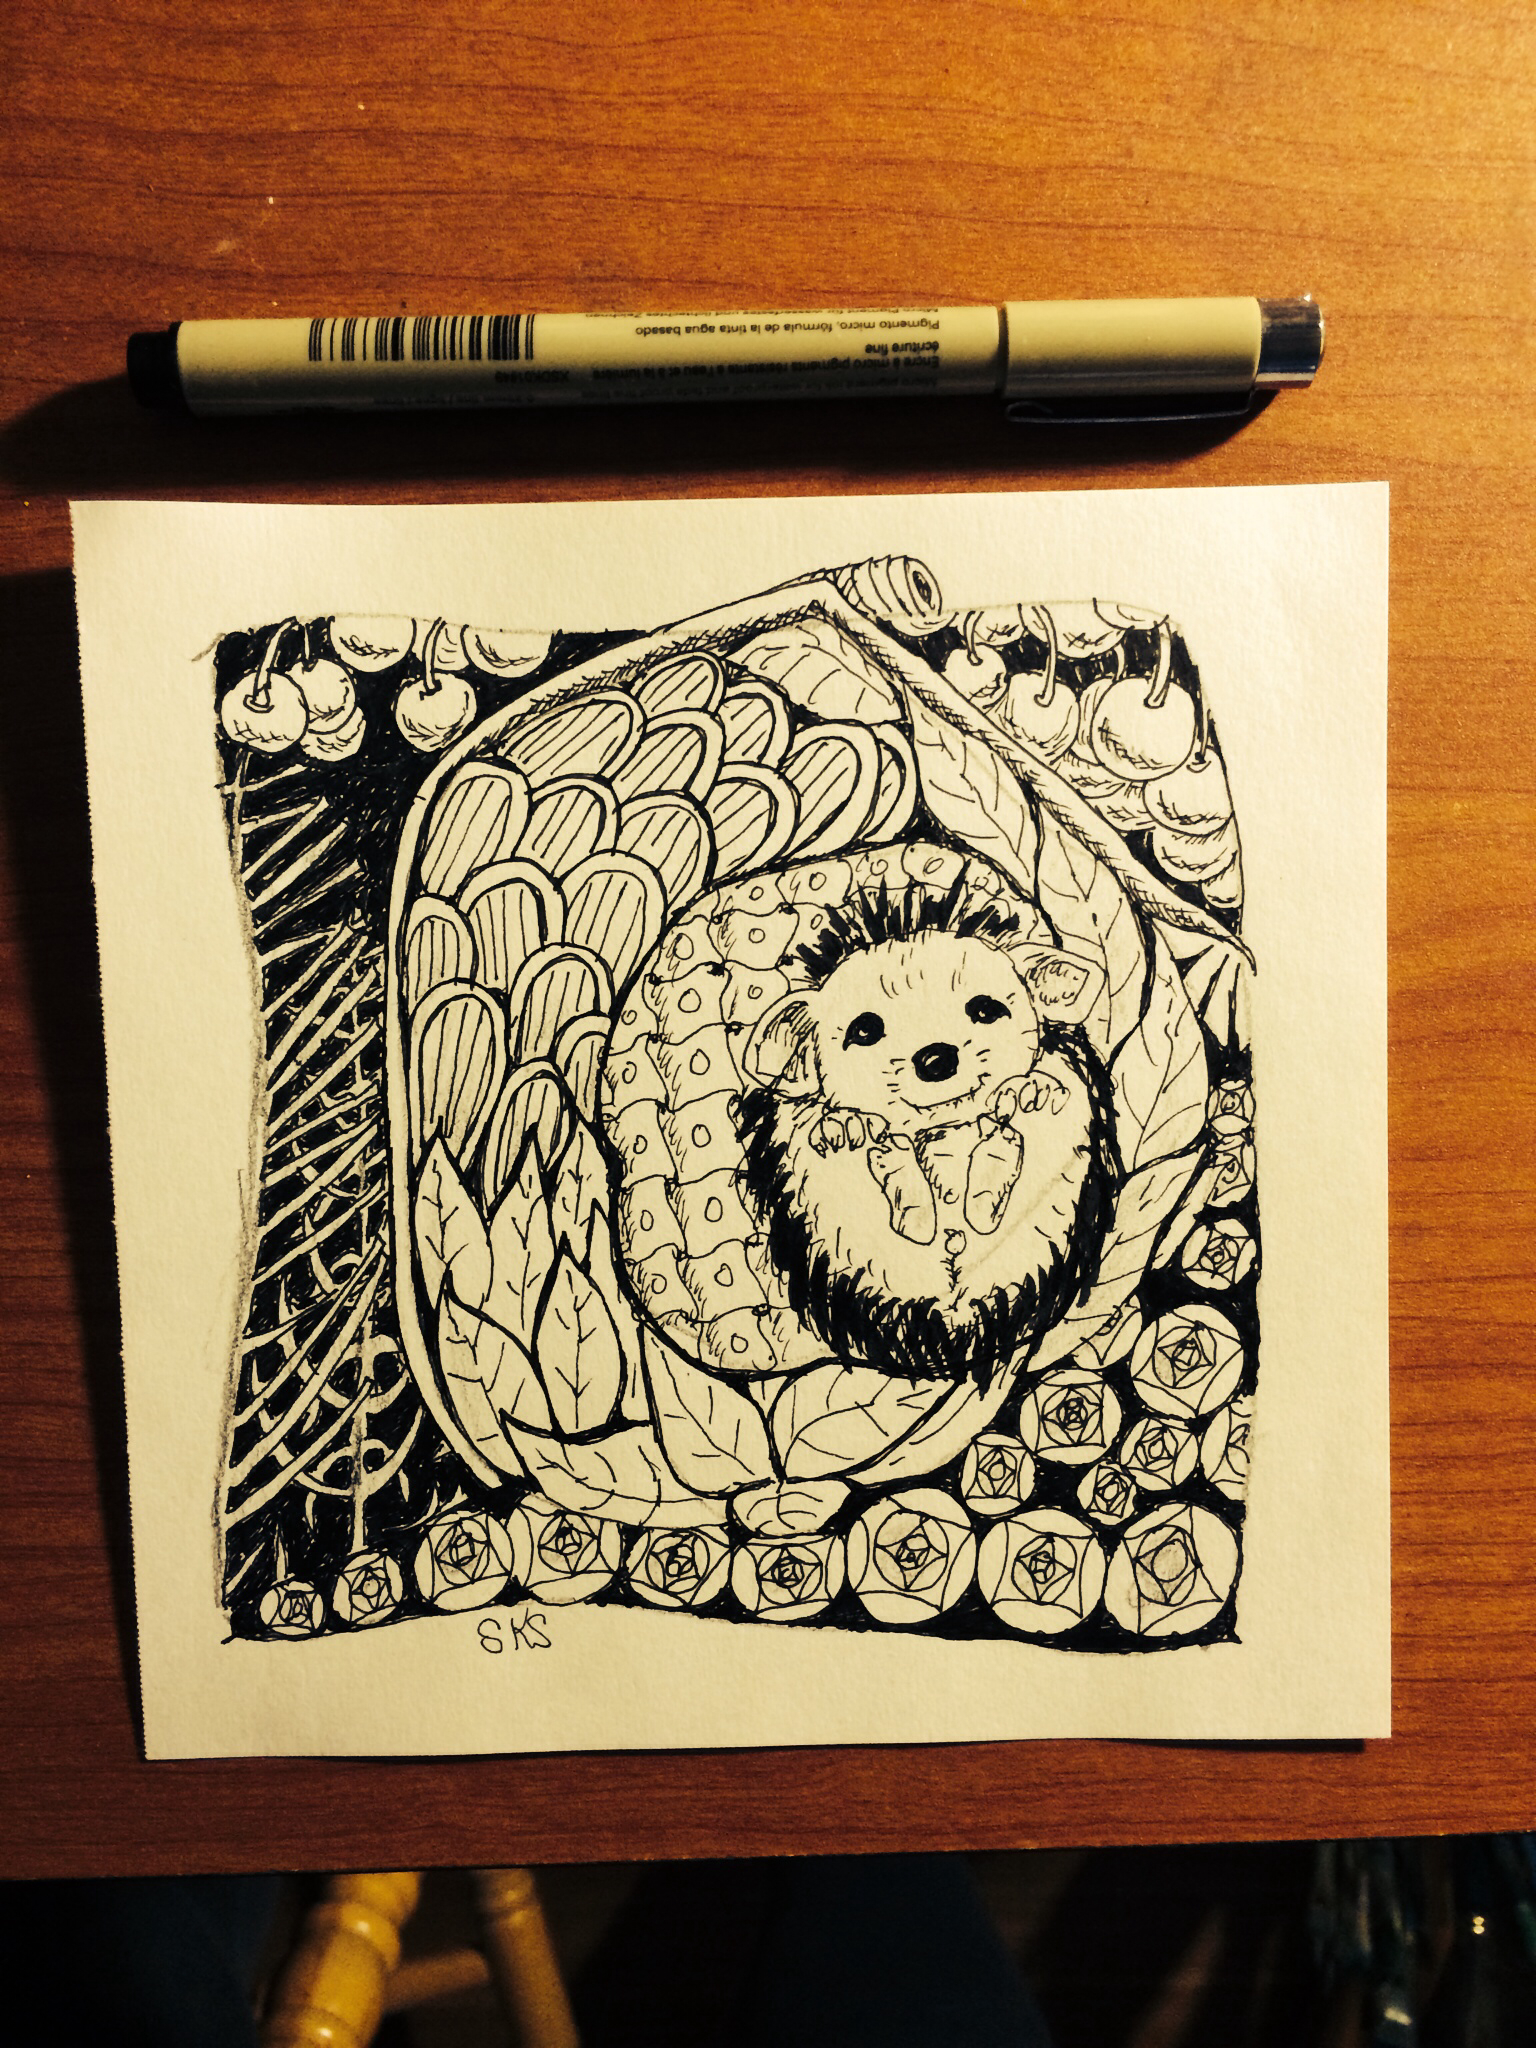 Drawn hedgehog zentangle Zentangle Hedgehog zentangle A5 Hedgehog